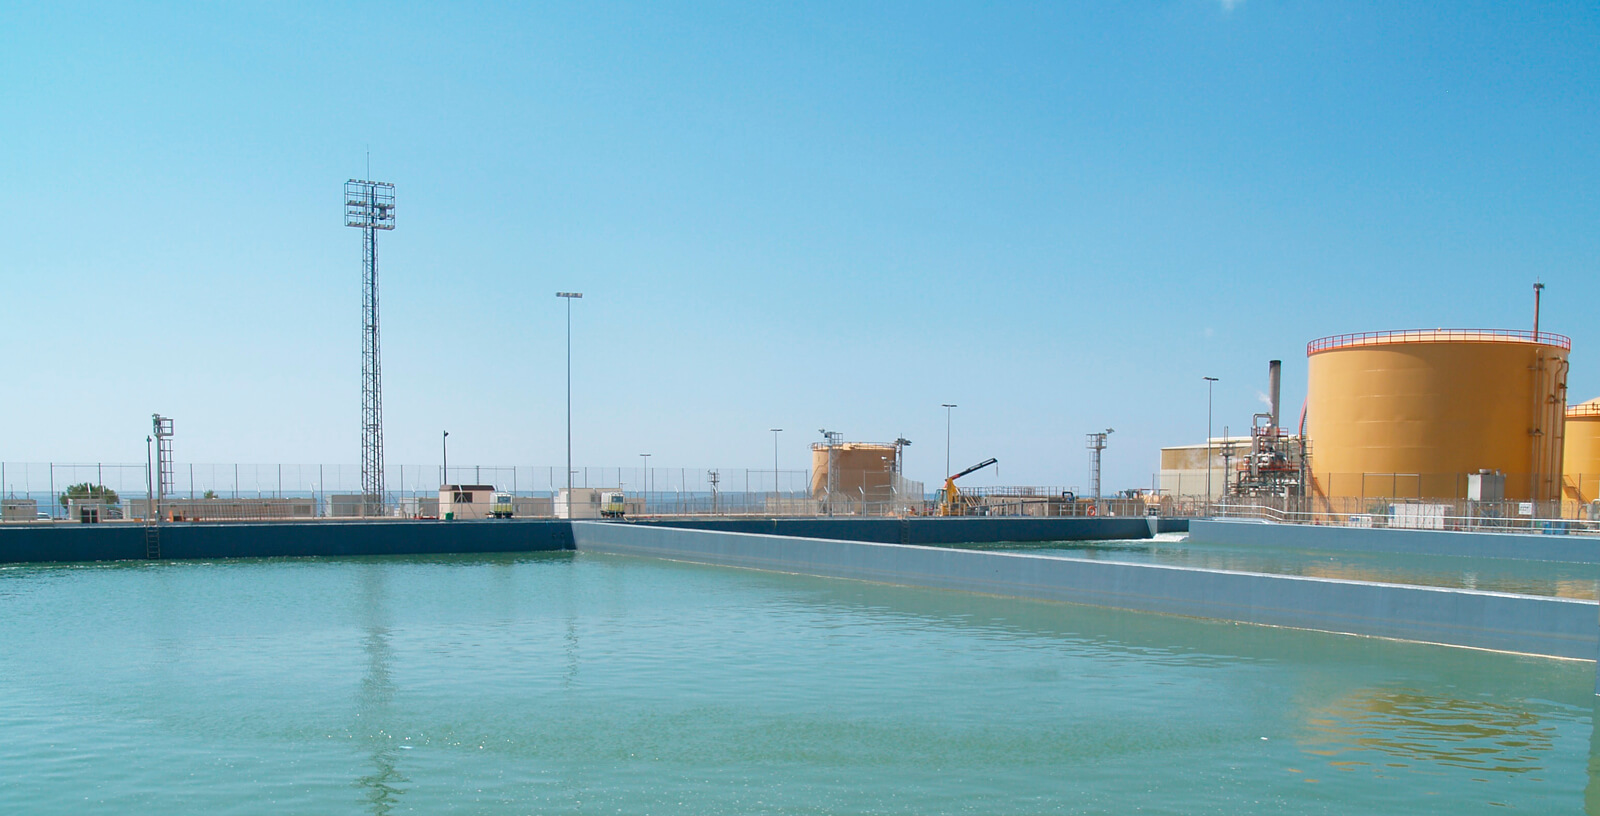 Idom_Nuclear_Services_Design_Construction_Commissioning_EJl_Safeguards_Cooling_Water_System_Vandell_s_NPP_ANAV